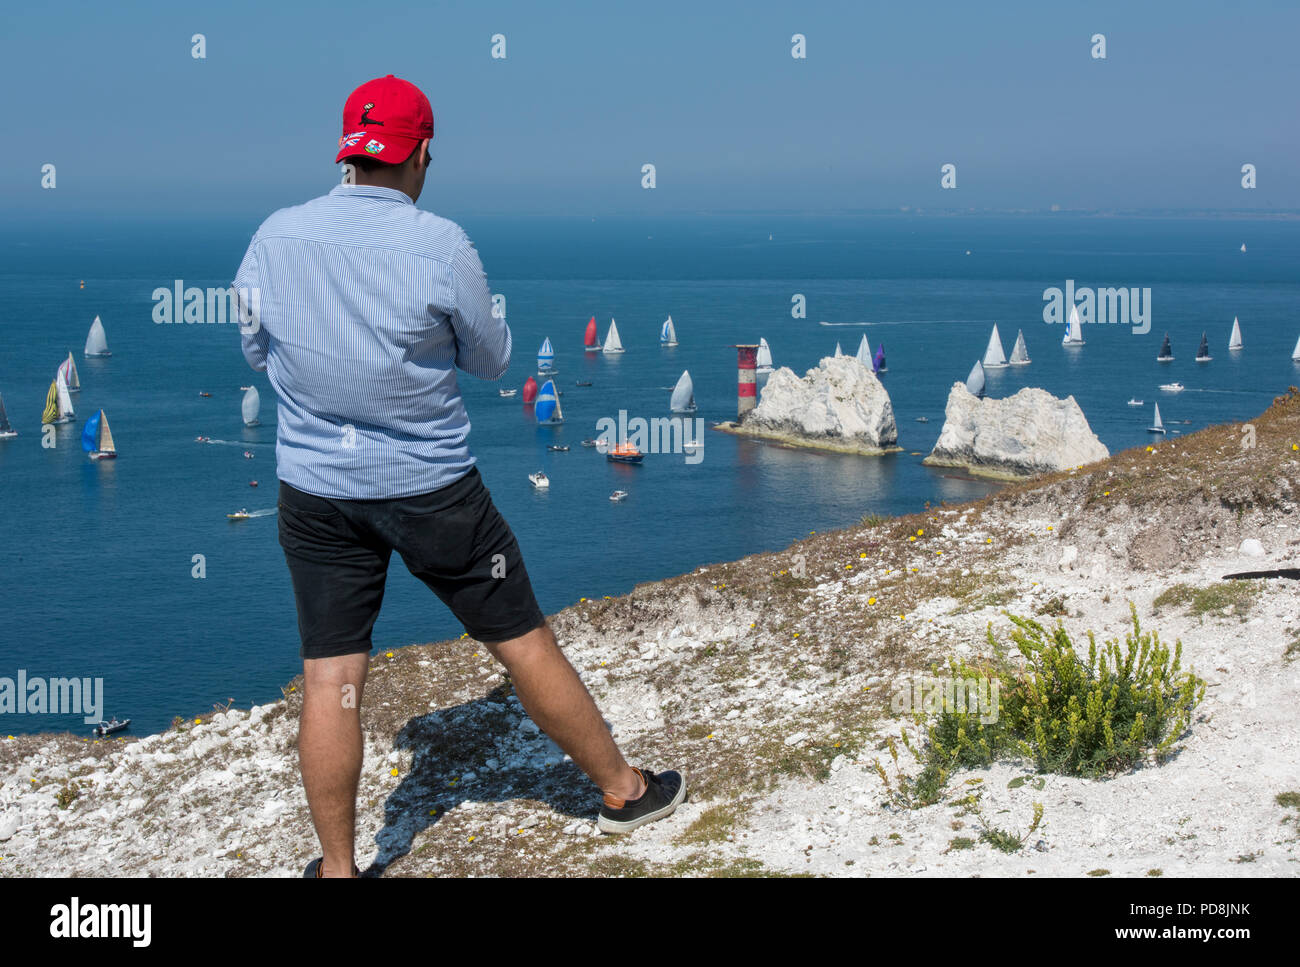 an atmospheric view of the round the island yacht race on the isle of wight with a man standing on the cliff edge watching at the needles lighthouse. - Stock Image